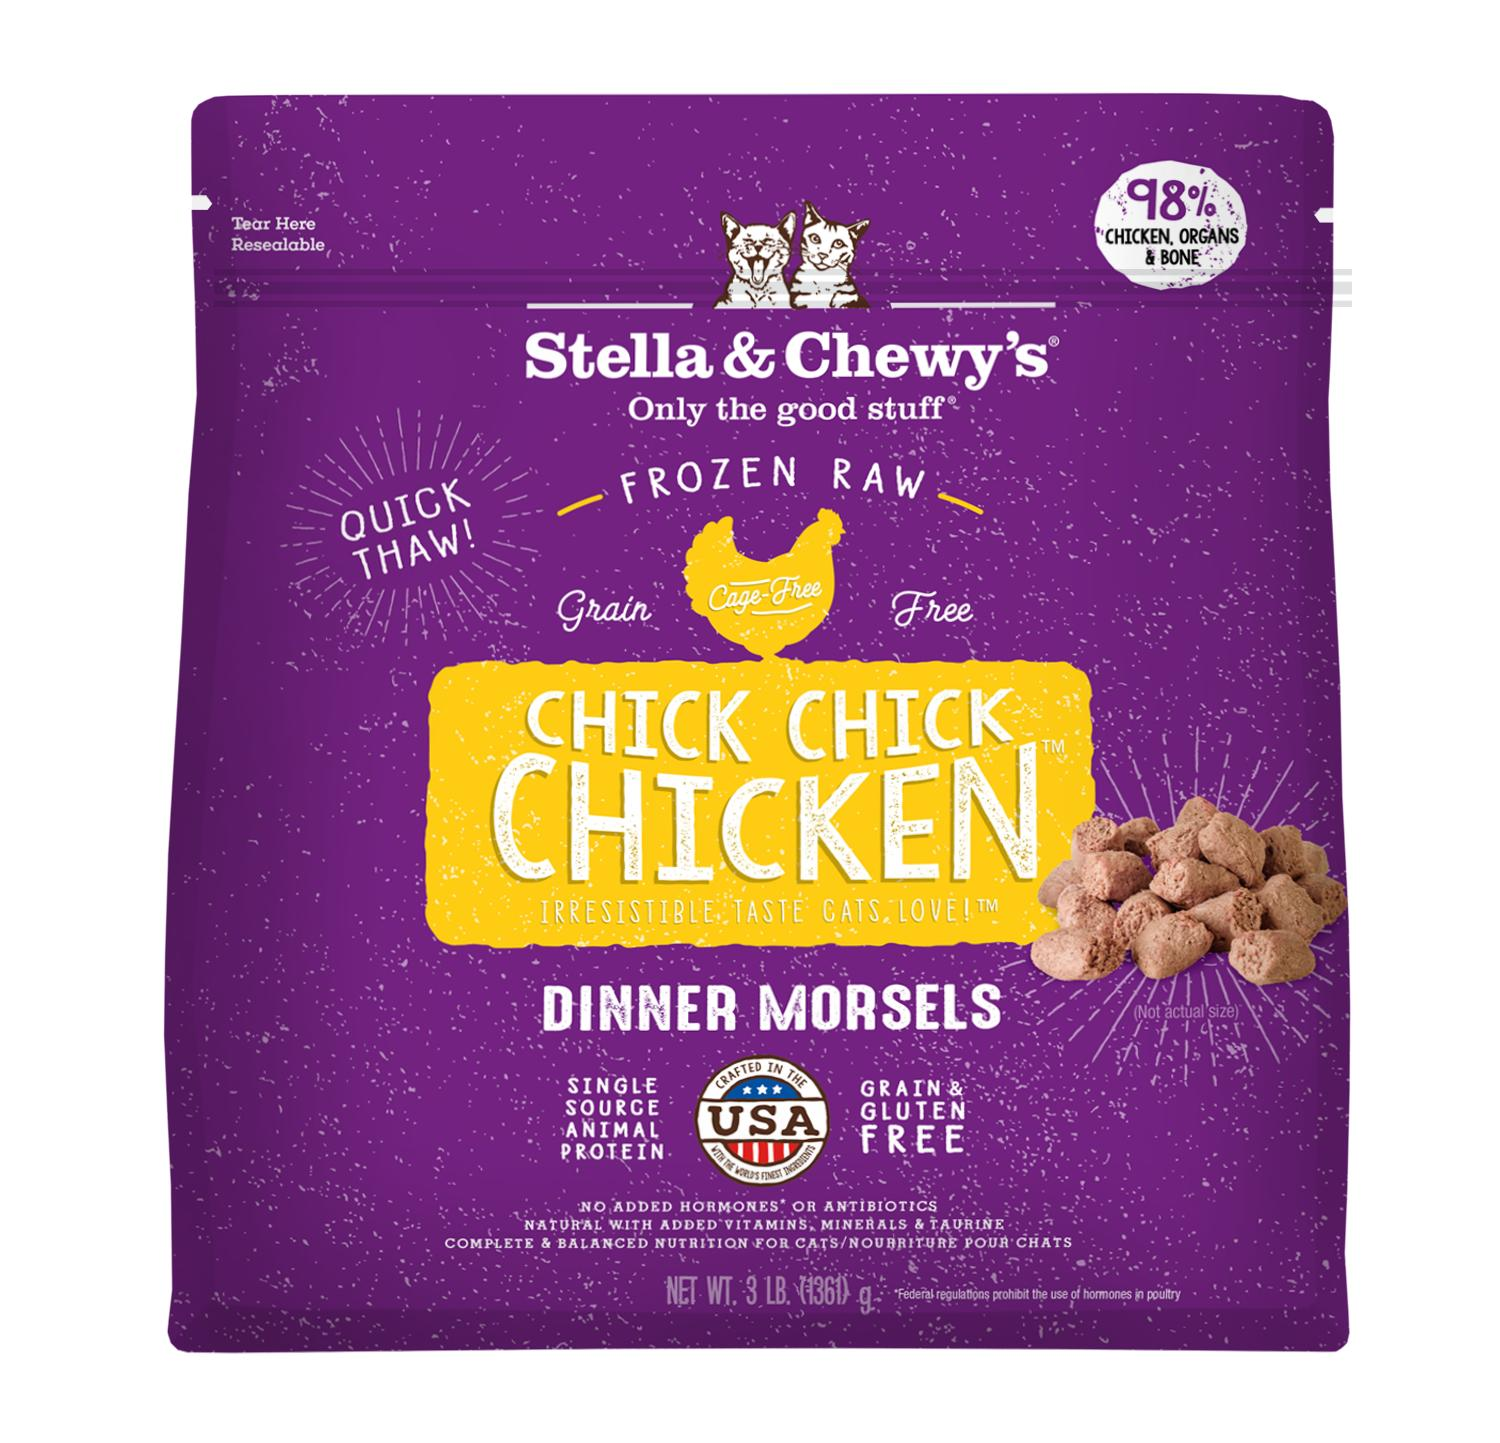 Stella & Chewy's Chick Chick Chicken Dinner Morsels Raw Frozen Cat Food, 3-lb